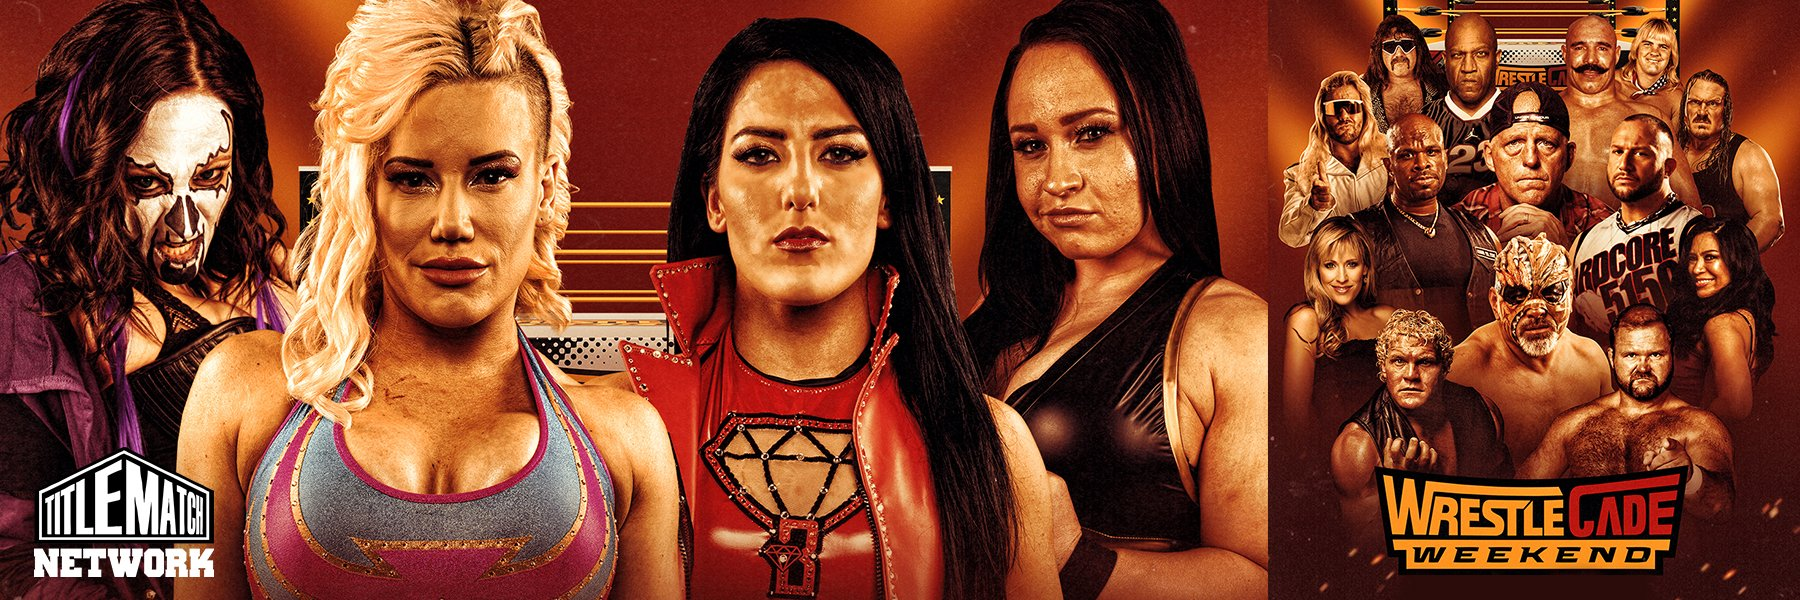 Wrestlecade Supershow 2019 Live iPPV 11.30 (Great Muta, Tessa Blanchard)